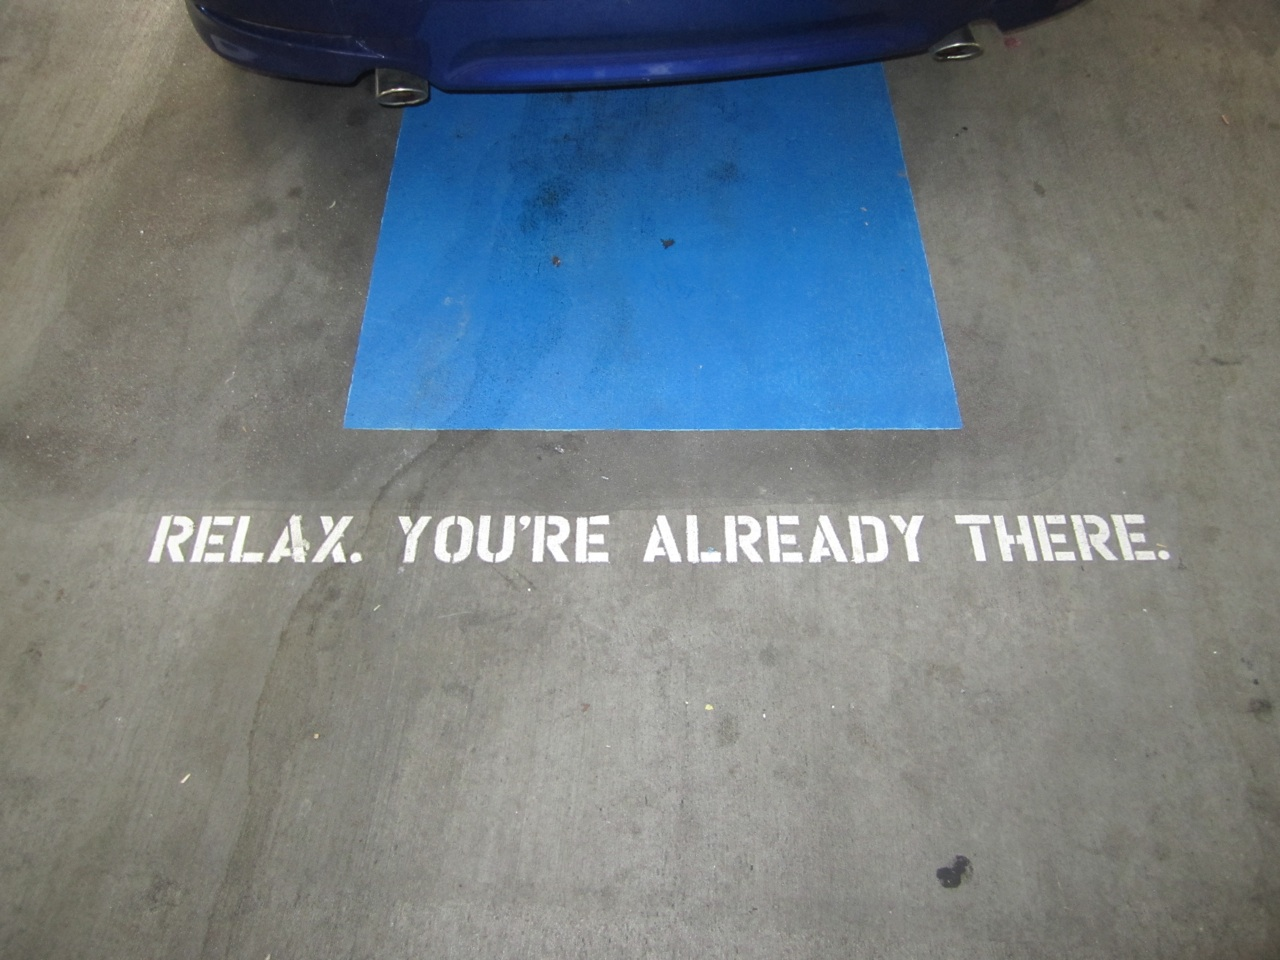 A Parking Spot In A Garage With An Inspirational Saying Painted On It.  Each Spot Had A Different Saying.